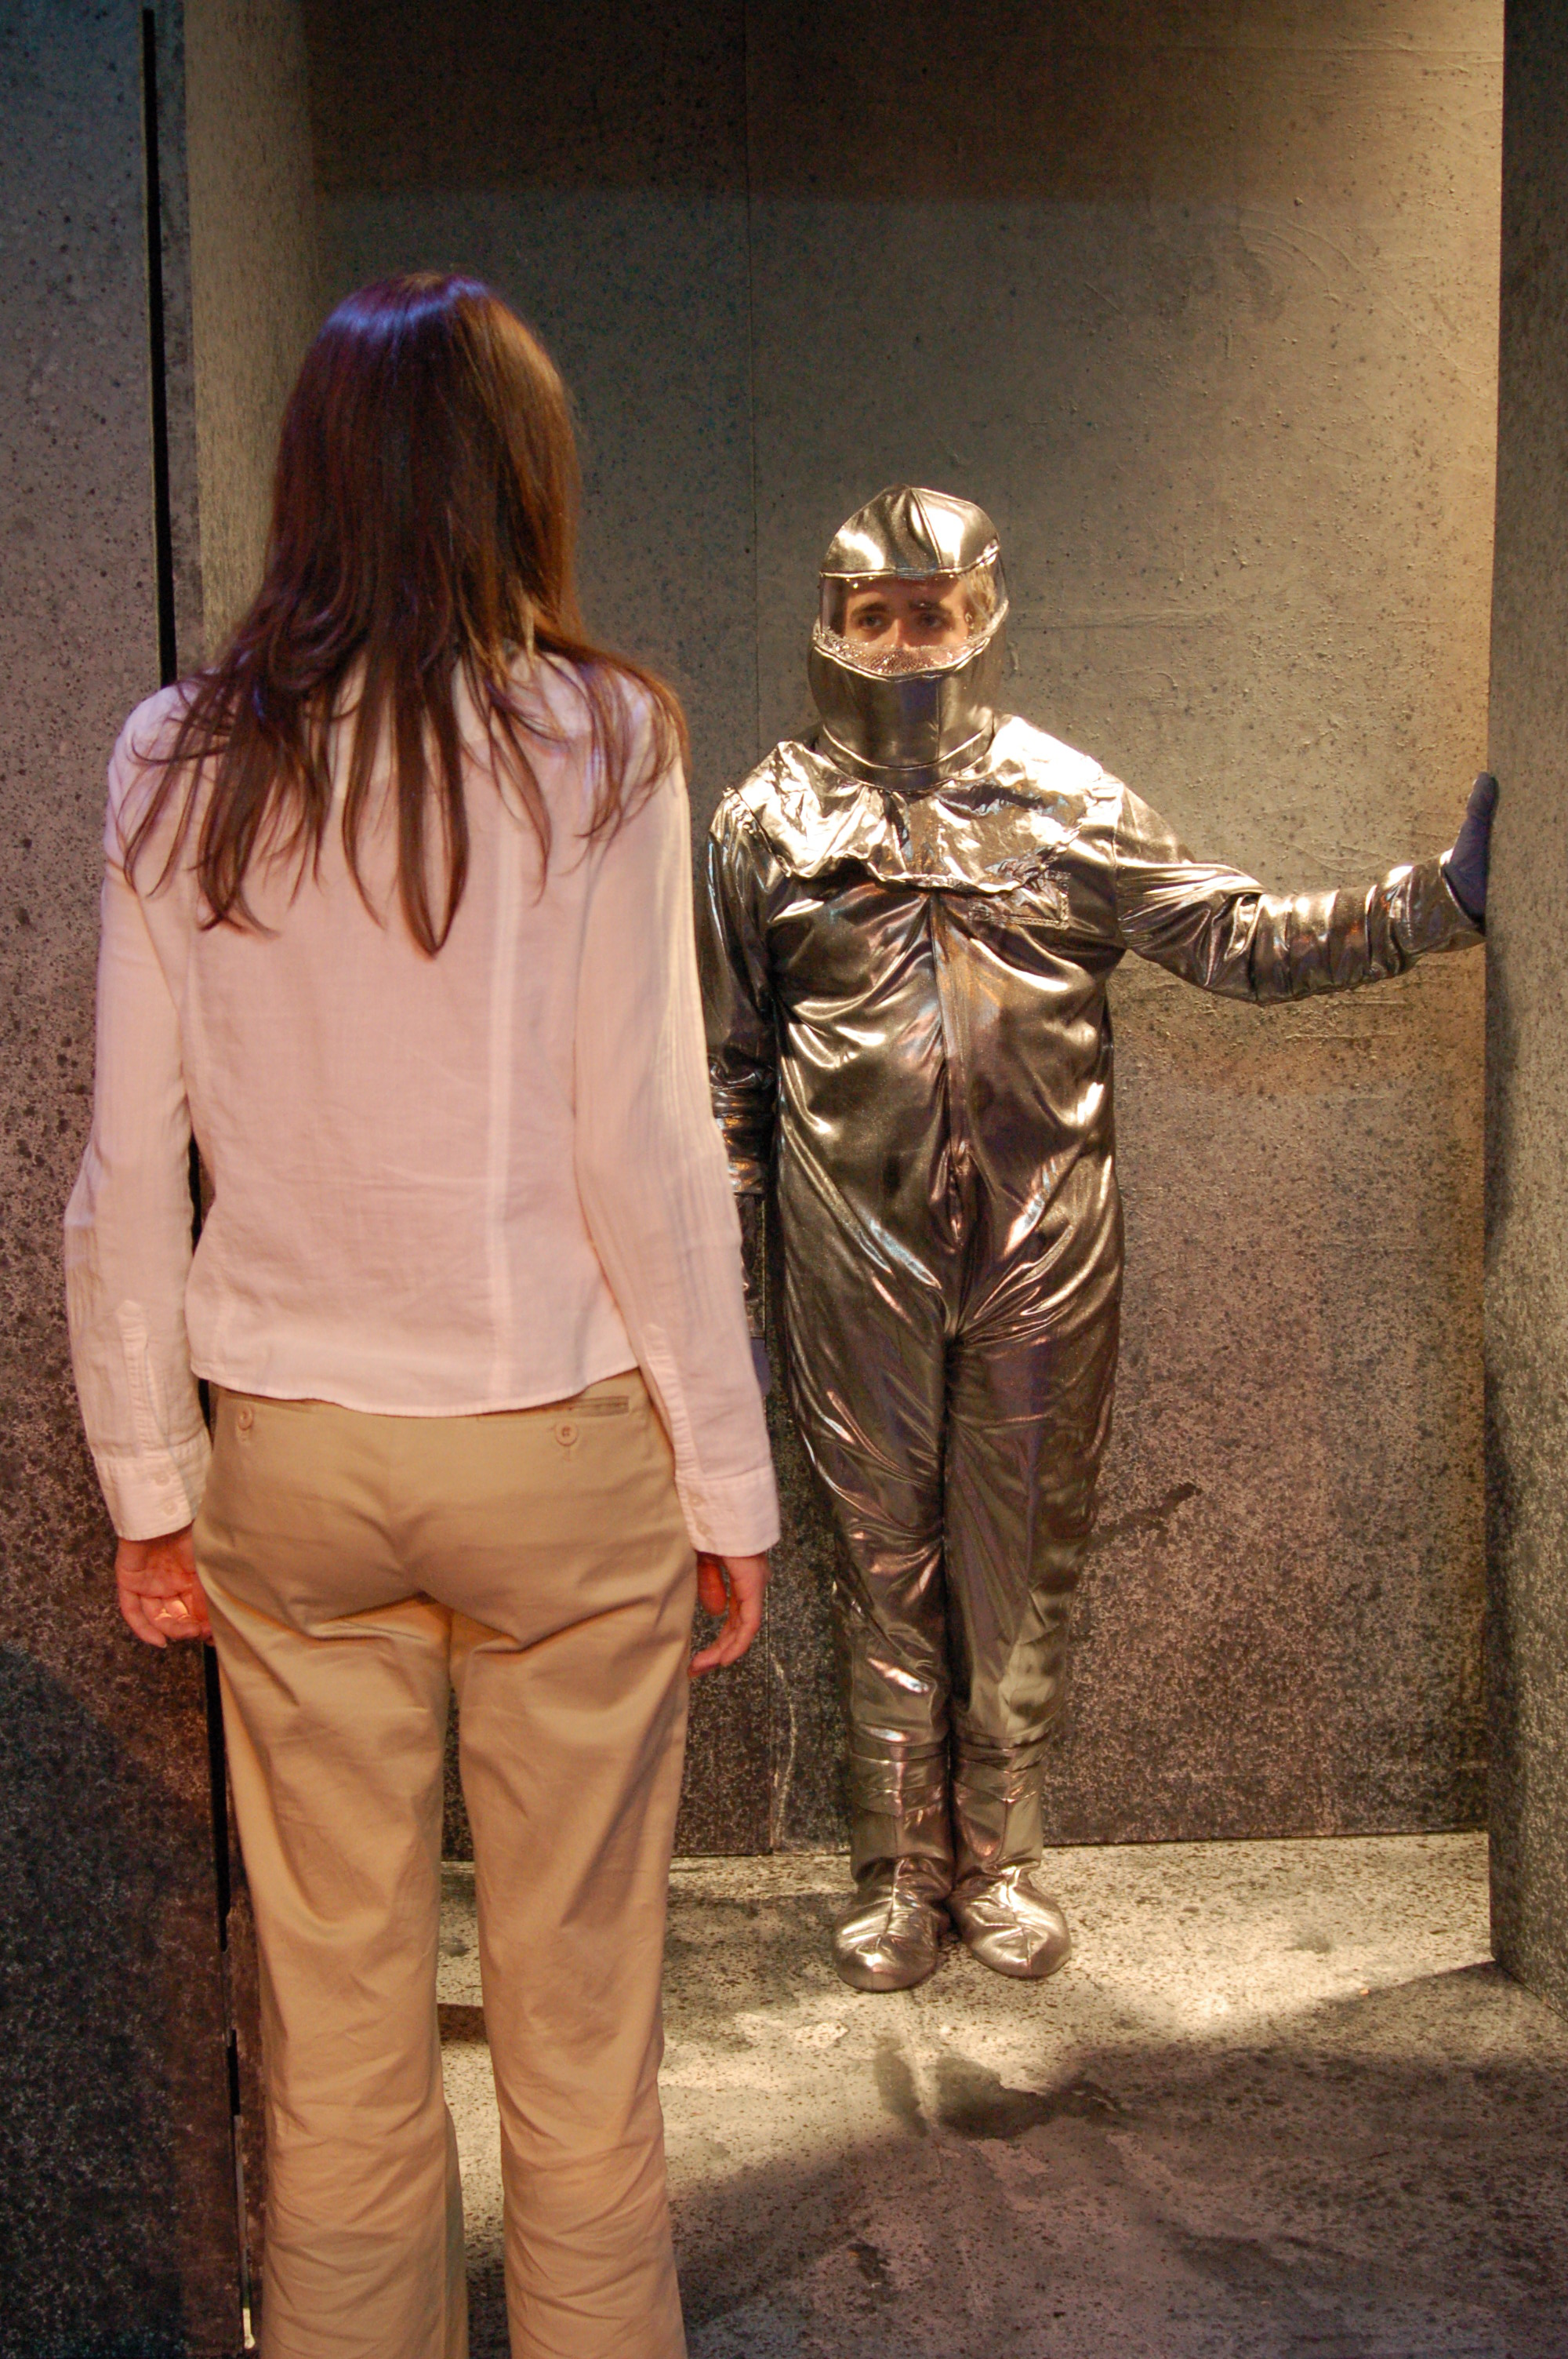 two actors stand towards each other, one in a silver suit